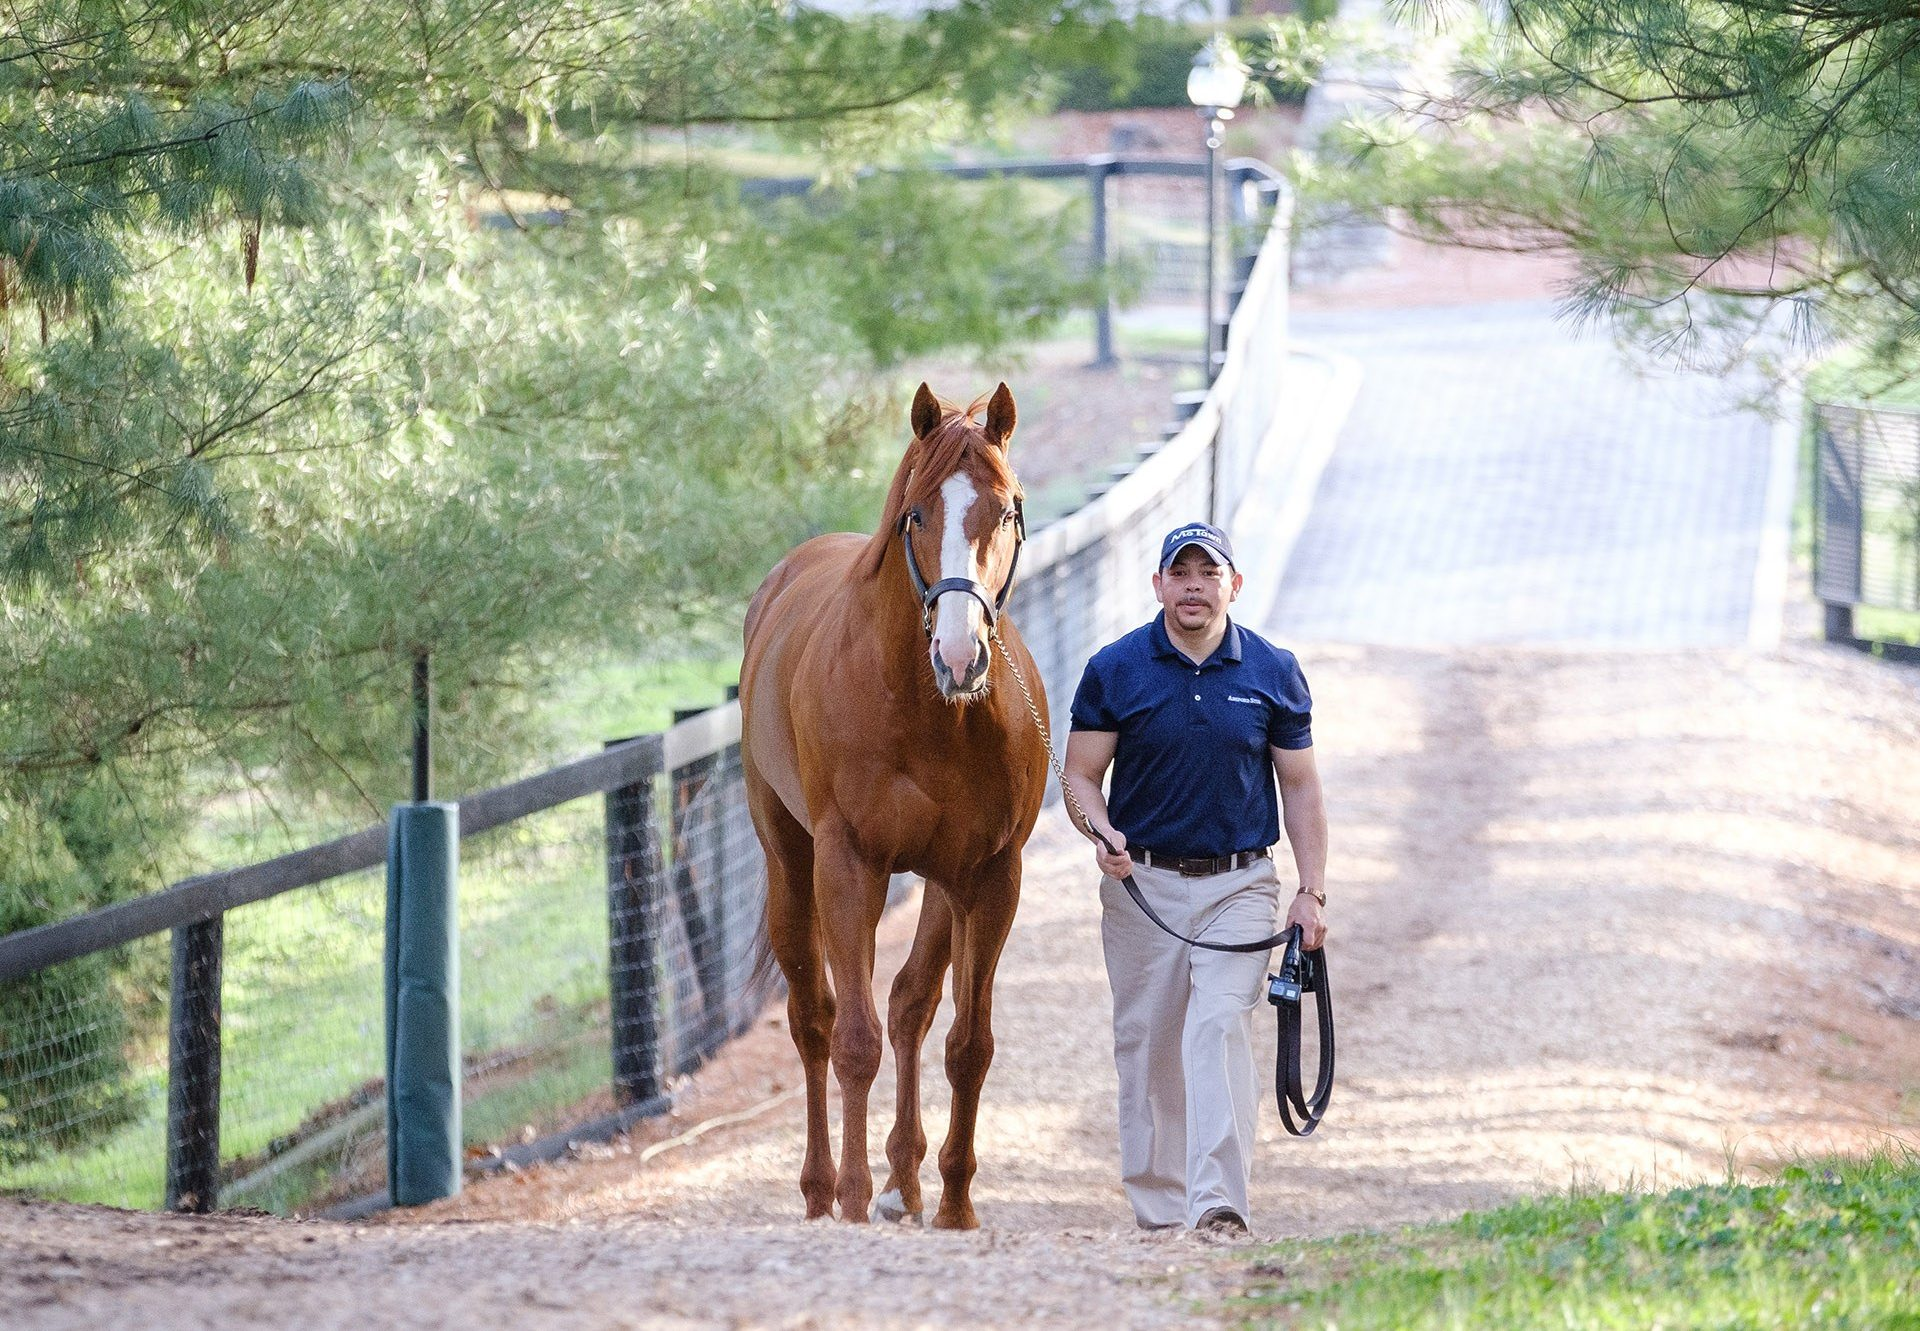 Justify walking